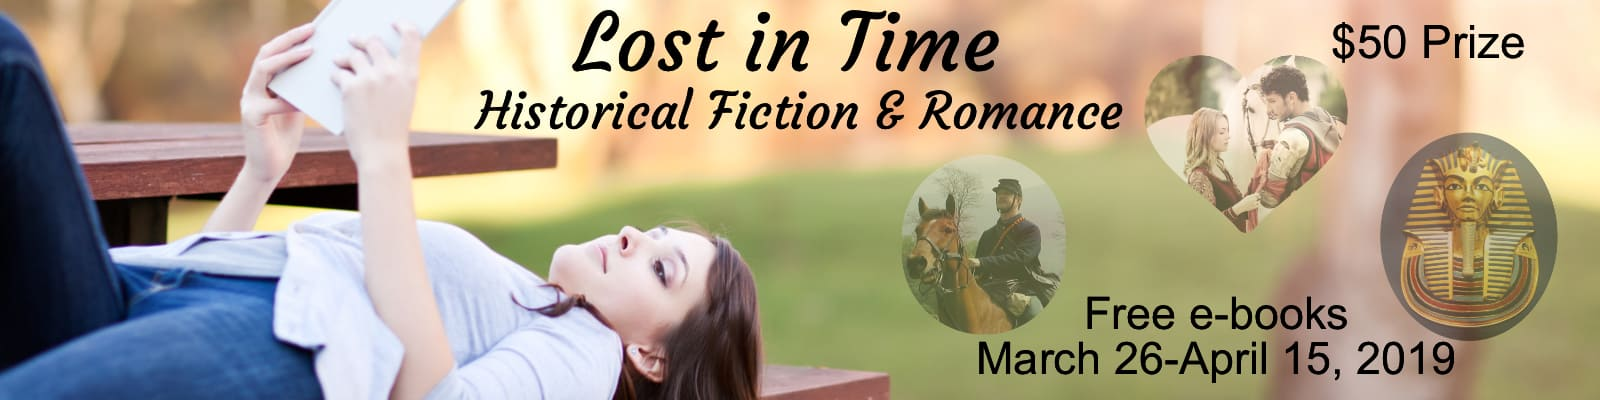 Lost in Time: Historical Fiction & Romance